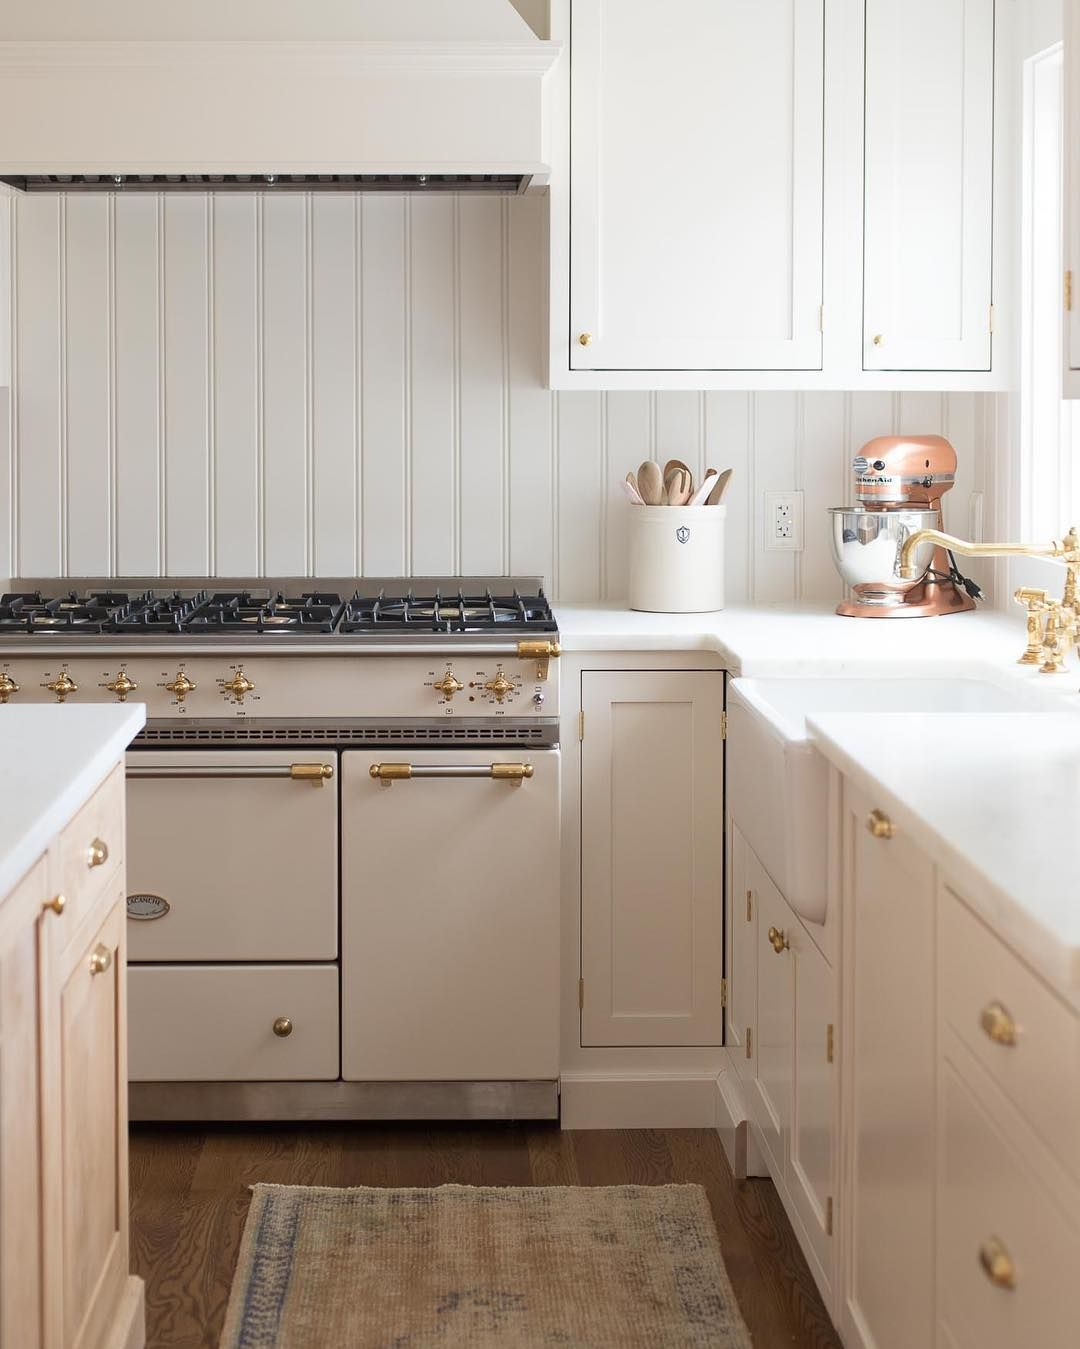 Neutral Warm Creamy White Kitchen With Lacanche Range And A Blend Of Contemporary And Tra Galley Kitchen Remodel Kitchen Remodel Countertops Kitchen Renovation